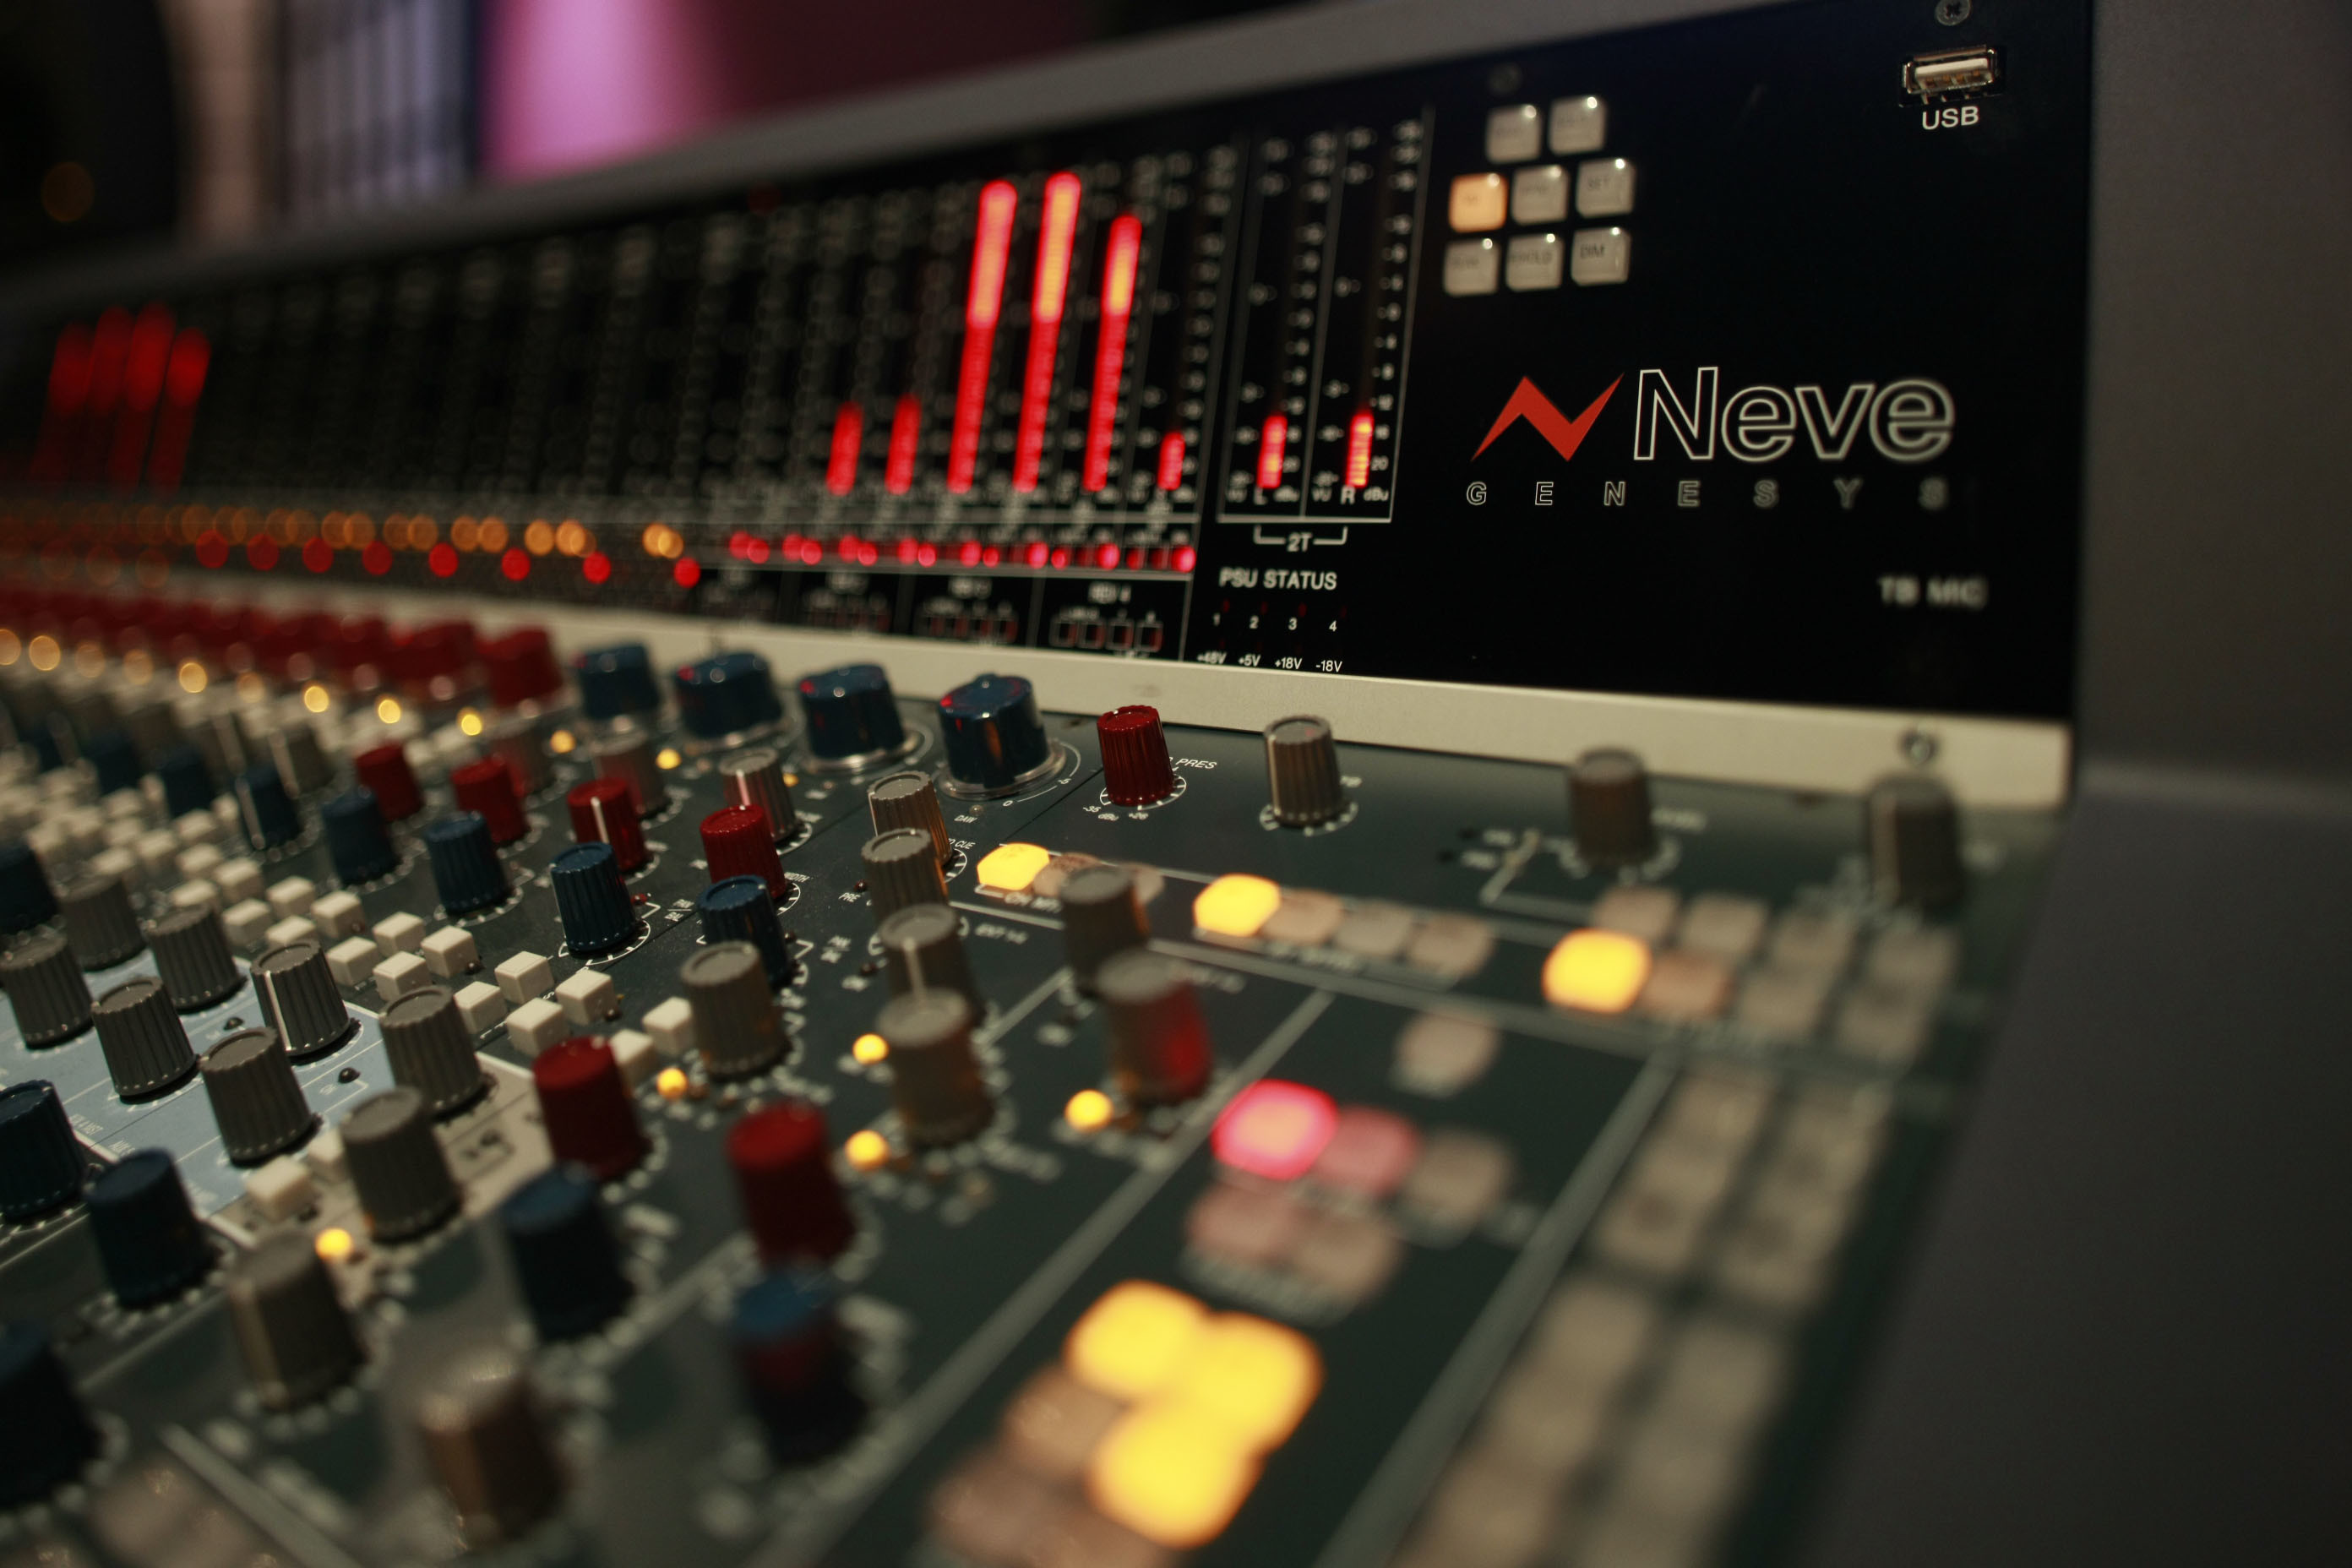 2784x1856 GC Pro Close up Engineer mixing console recording studio ~ Video #22414280  ...